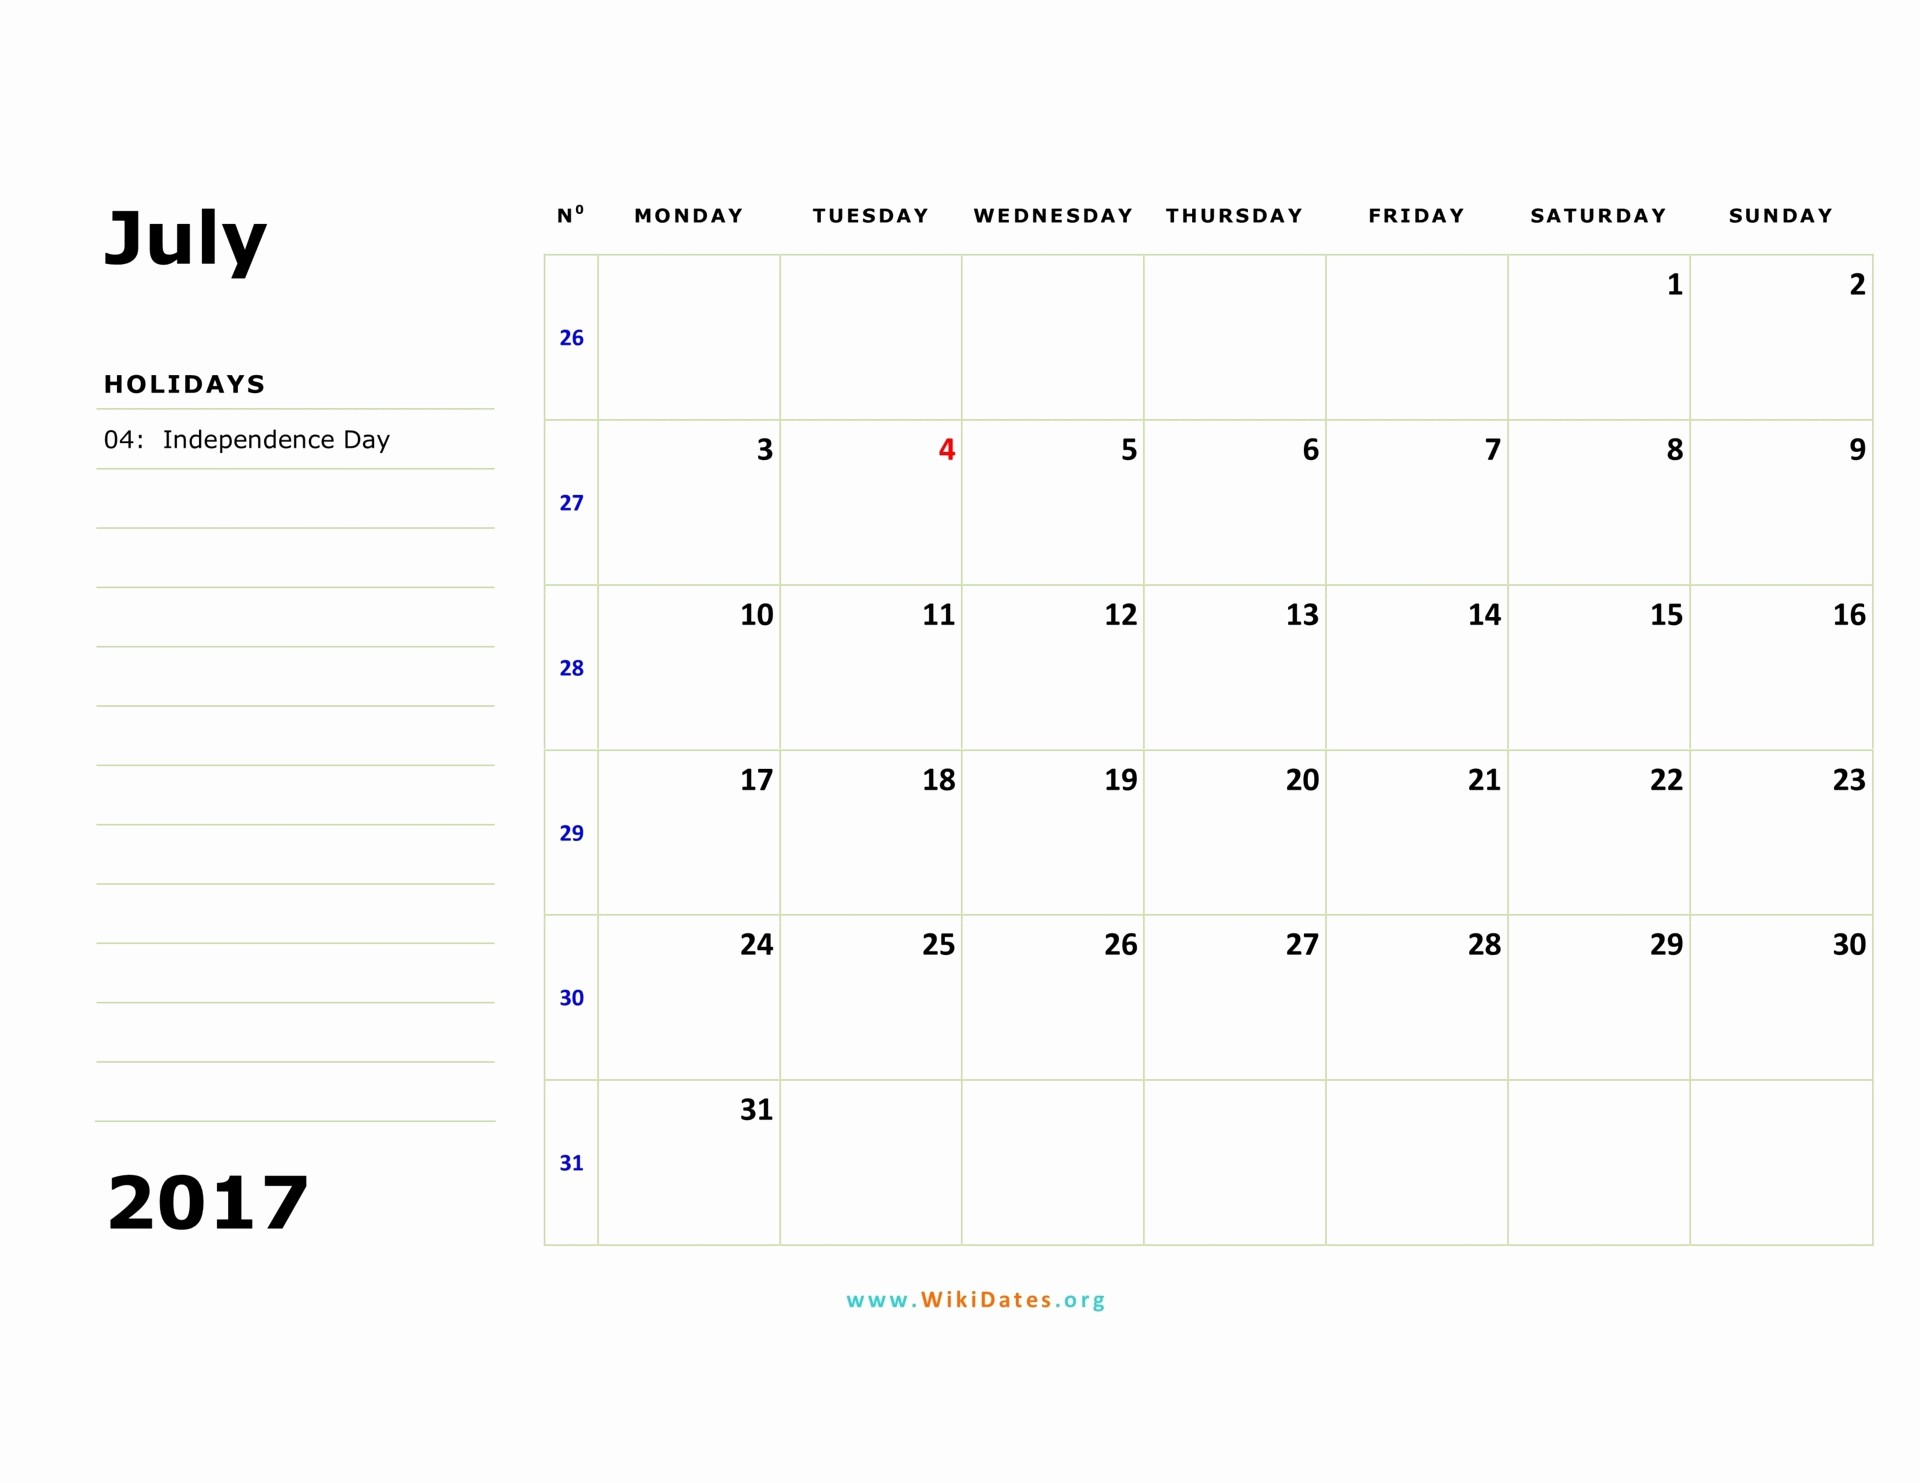 Monday to Sunday Calendar 2017 New July 2017 Calendar